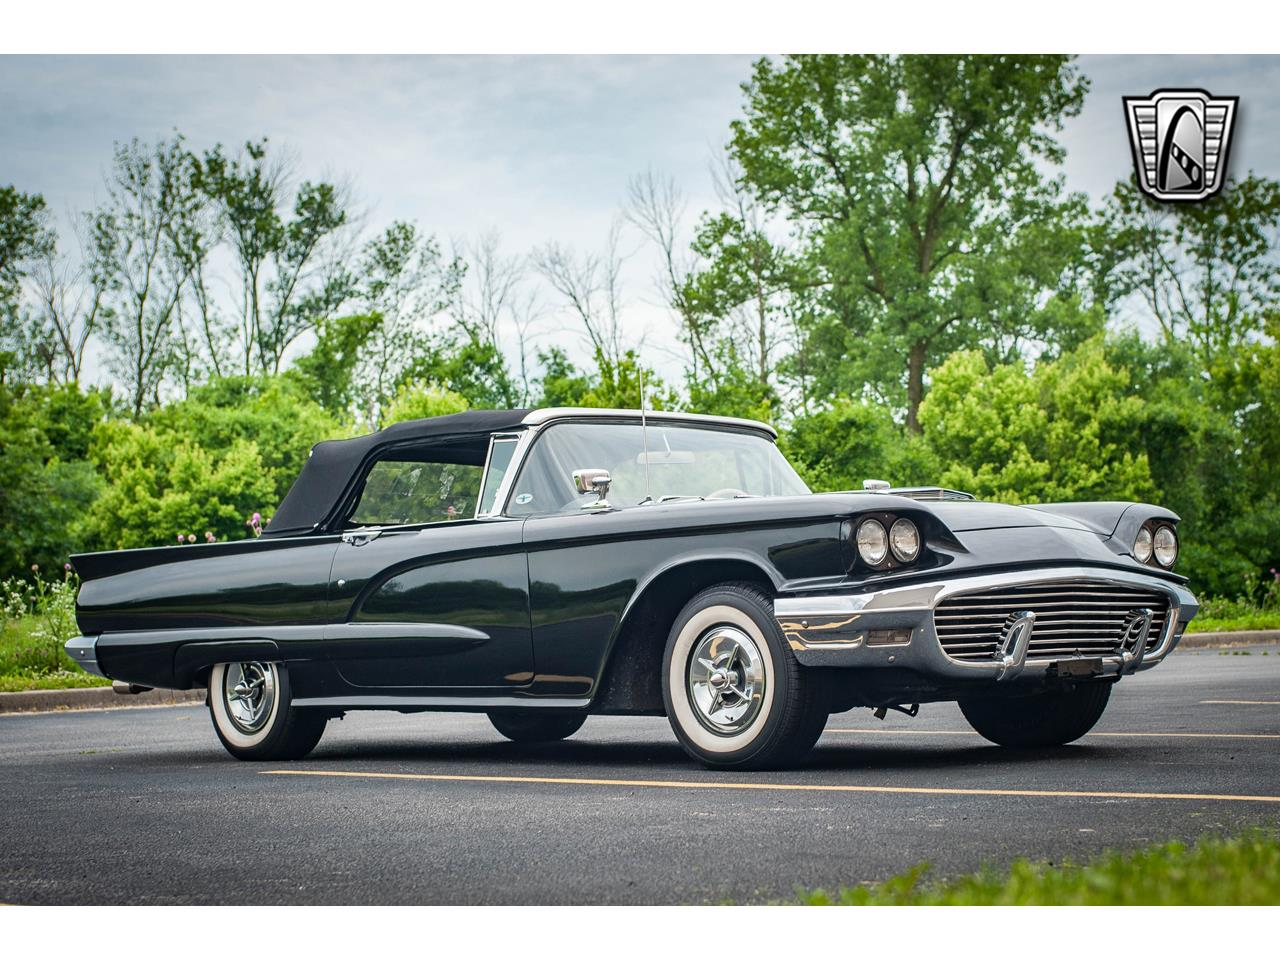 Large Picture of Classic 1960 Thunderbird located in Illinois - $40,500.00 Offered by Gateway Classic Cars - St. Louis - QB9W